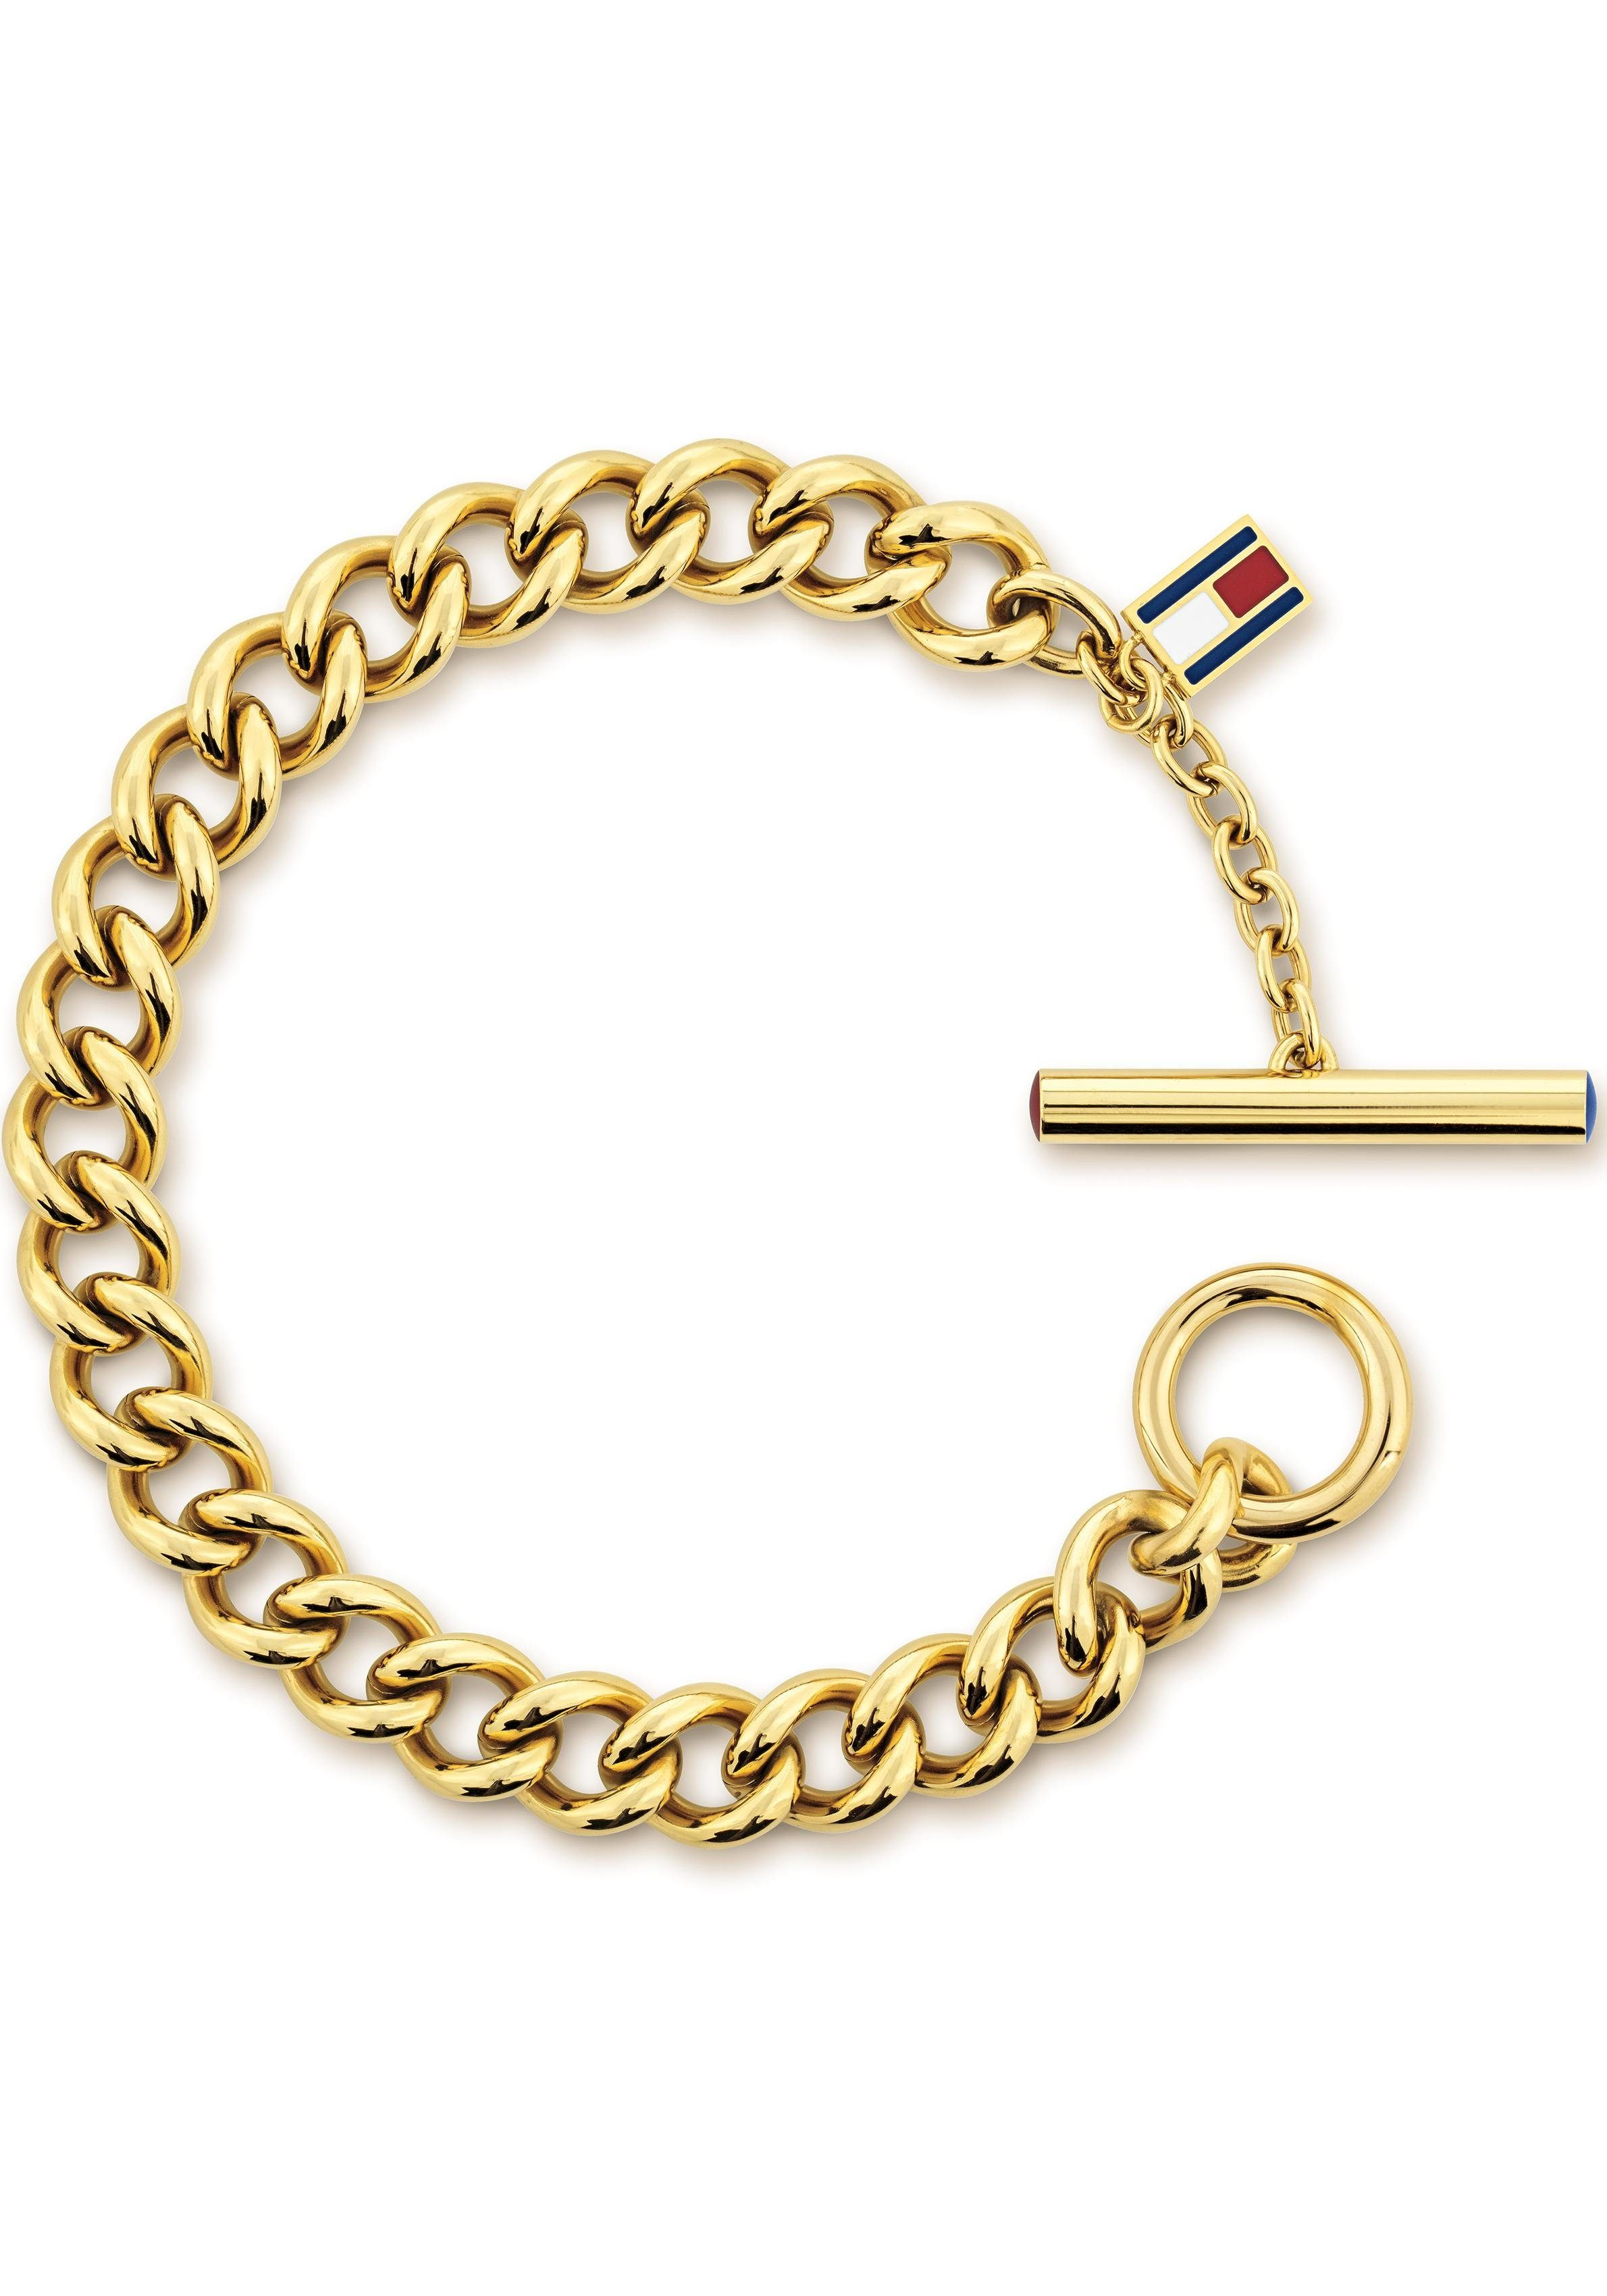 TOMMY HILFIGER Edelstahlarmband »CLASSIC SIGNATURE, 2701051« mit Emaille